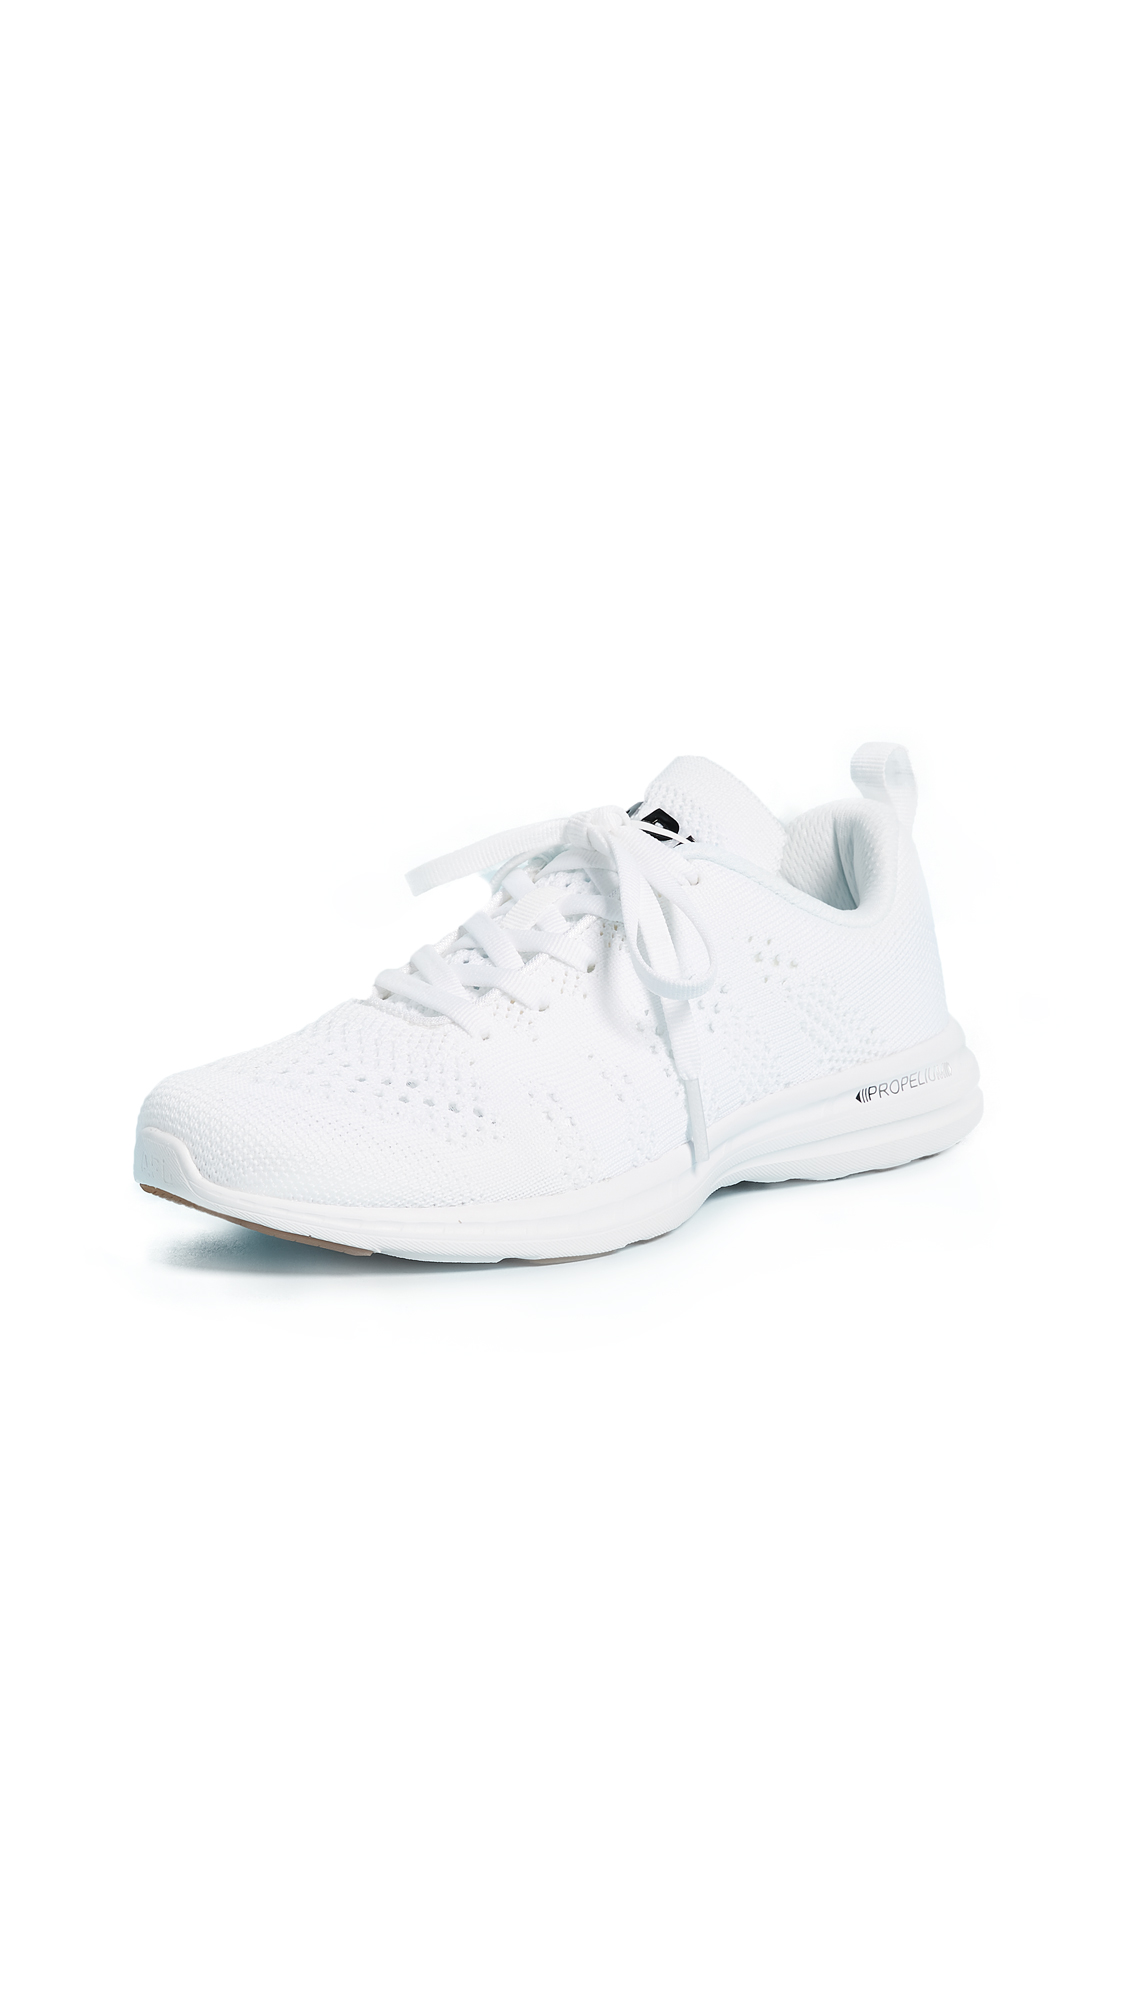 APL: Athletic Propulsion Labs TechLoom Pro Sneakers - White/Black/Gum